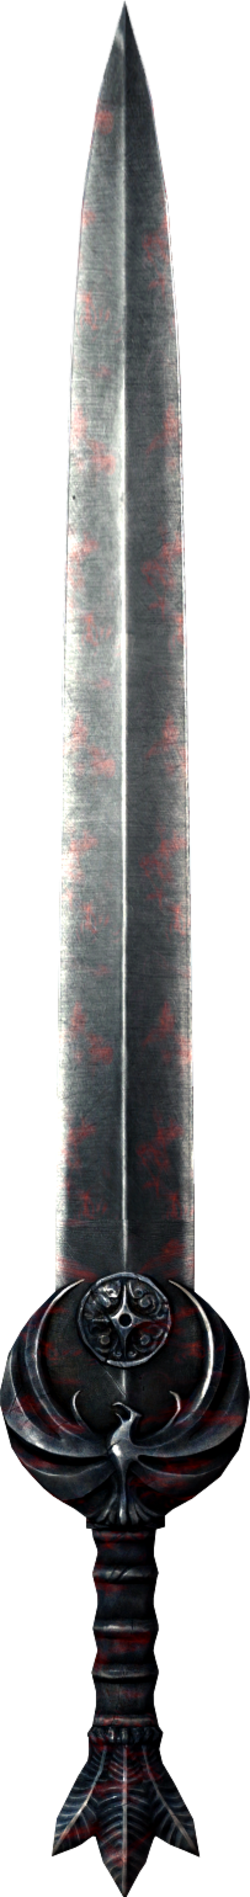 http://images1.wikia.nocookie.net/__cb20120612175535/elderscrolls/images/thumb/4/45/Nightingale_Blade.png/250px-Nightingale_Blade.png?height=250